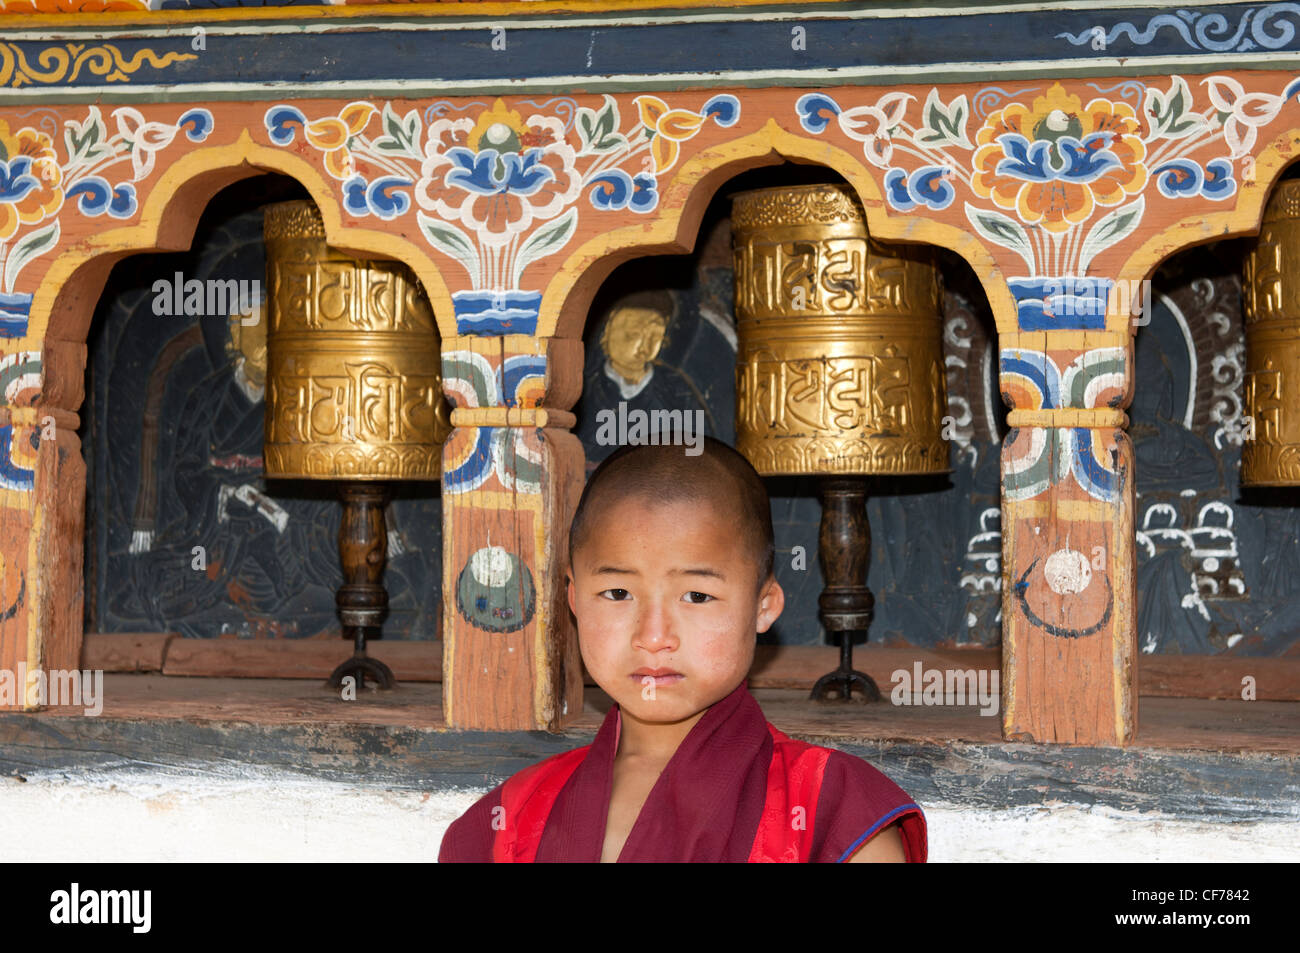 Infantile Buddhist monk standing by the prayer mills in the Temple of Fertility Chimi Lhakhang, Lobesa, Bhutan - Stock Image